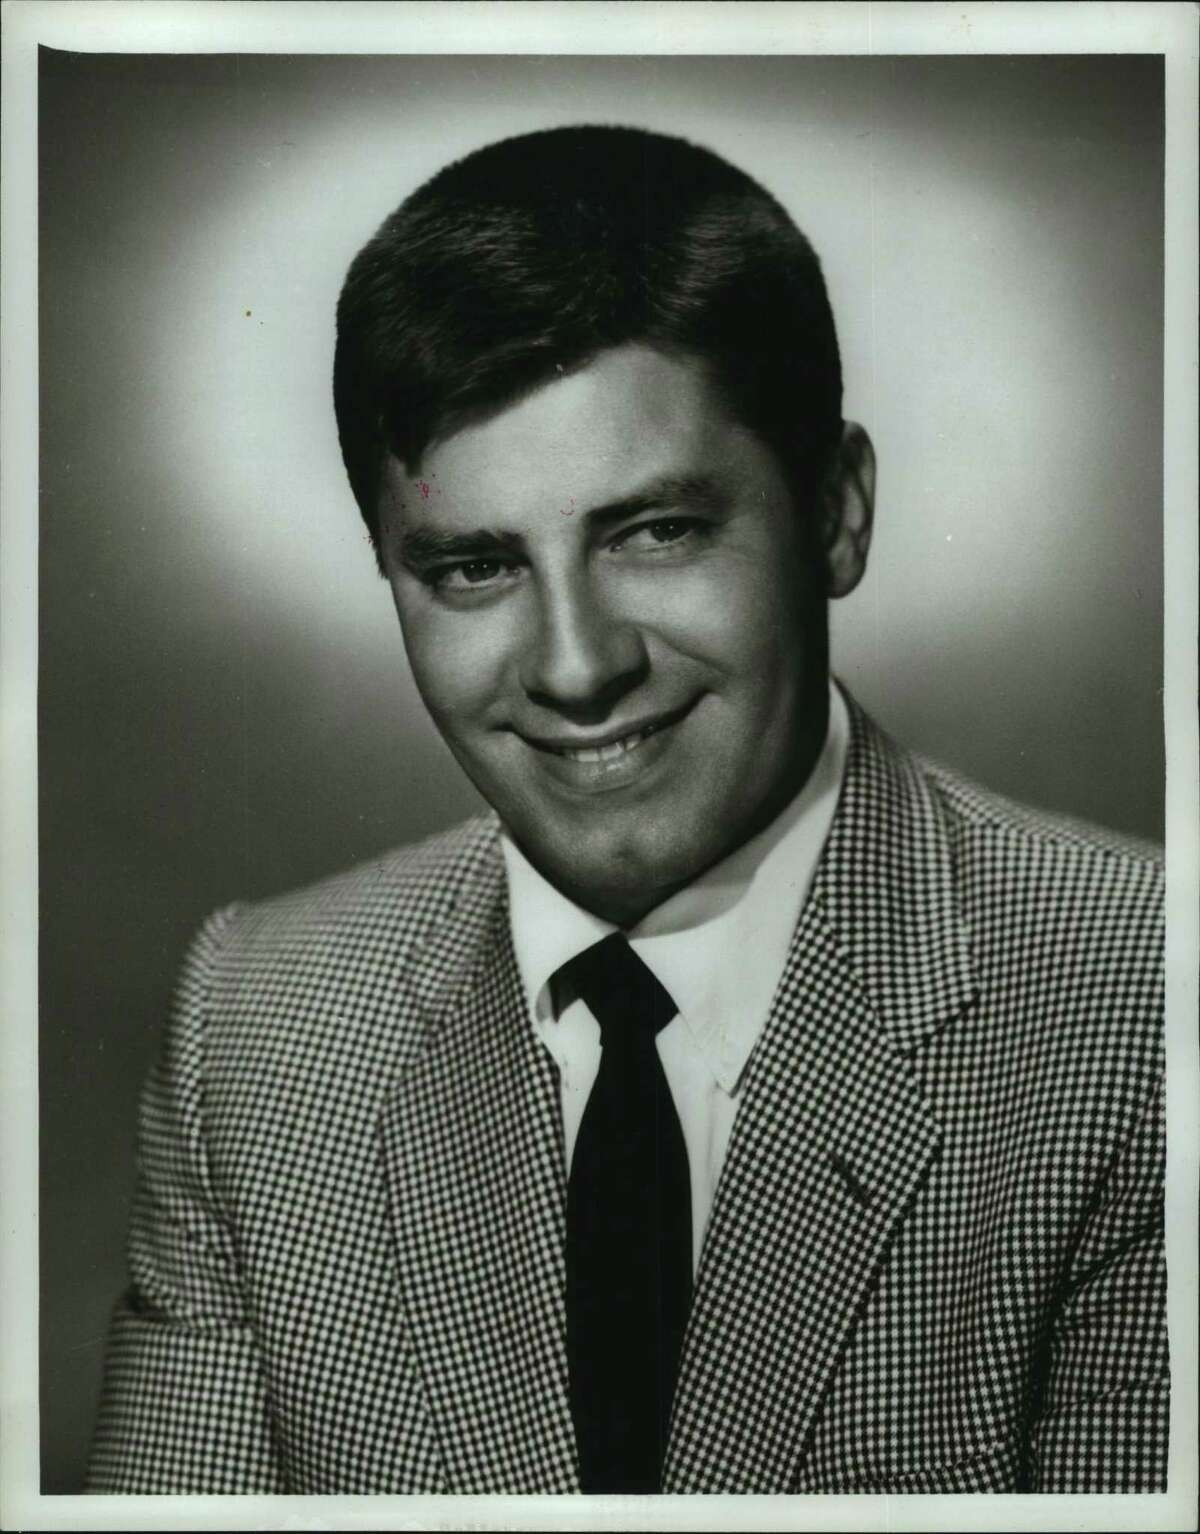 Jerry Lewis died in 2017, three years after Mick LaSalle wrote his obituary.